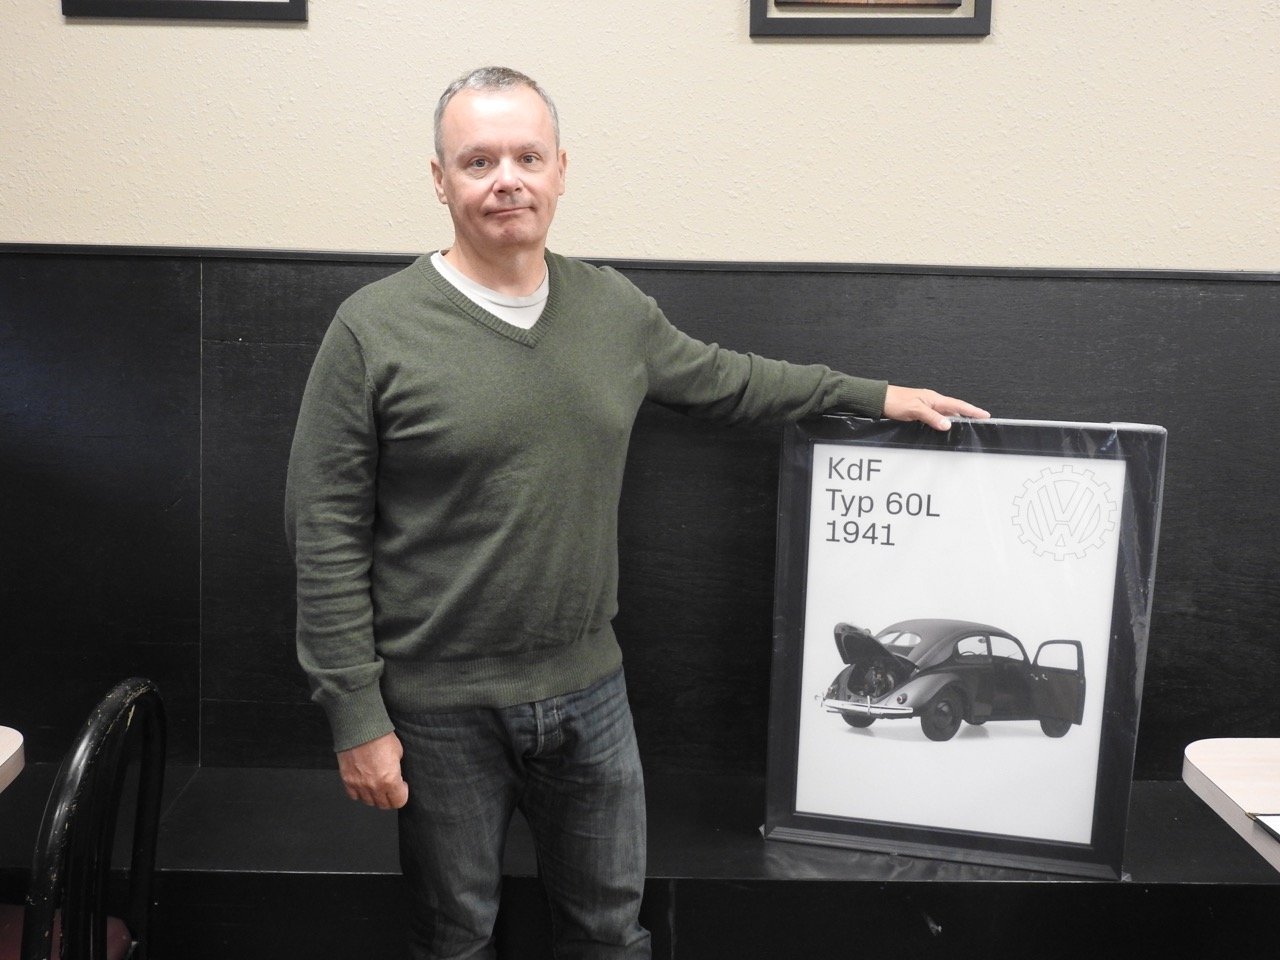 Ian with poster of 1941 KDF Type 60L built by Nazi Germany